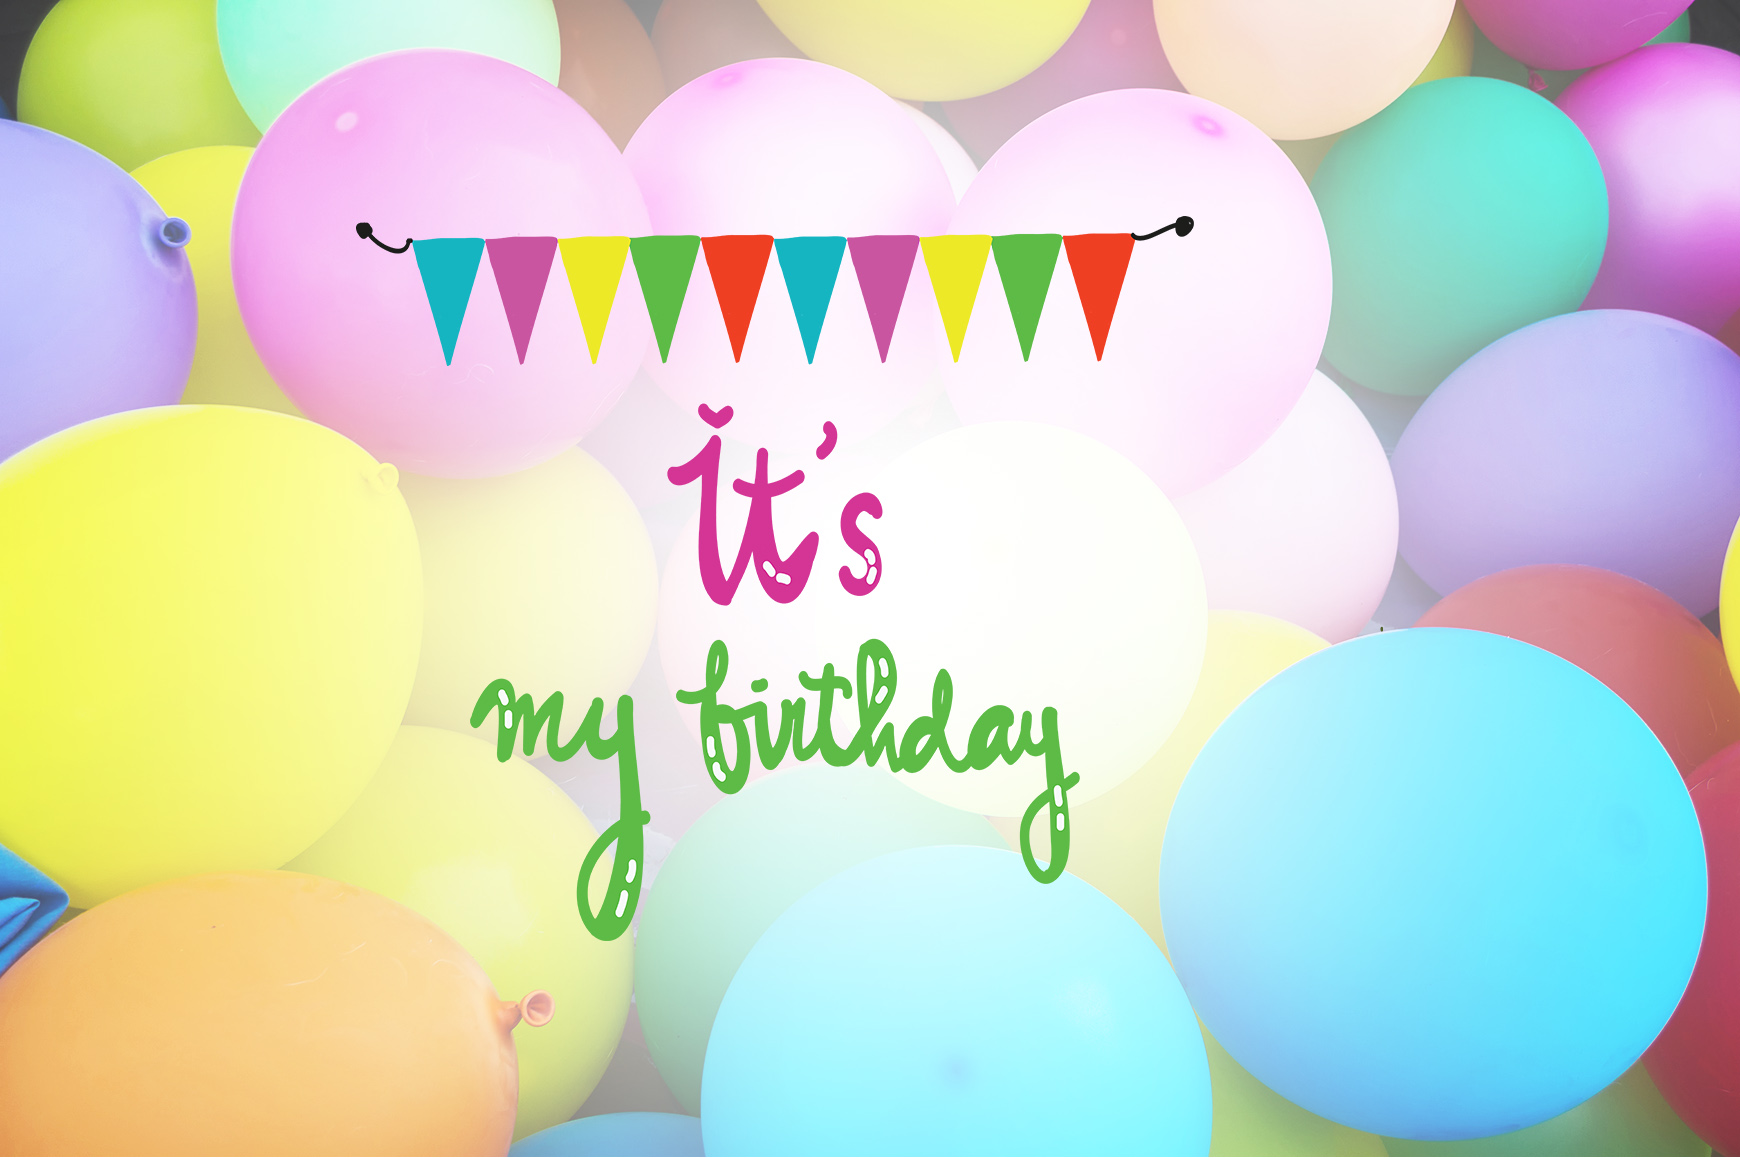 Magnificent Its My Birthday Quotes Graphic By Wienscollection Creative Personalised Birthday Cards Paralily Jamesorg